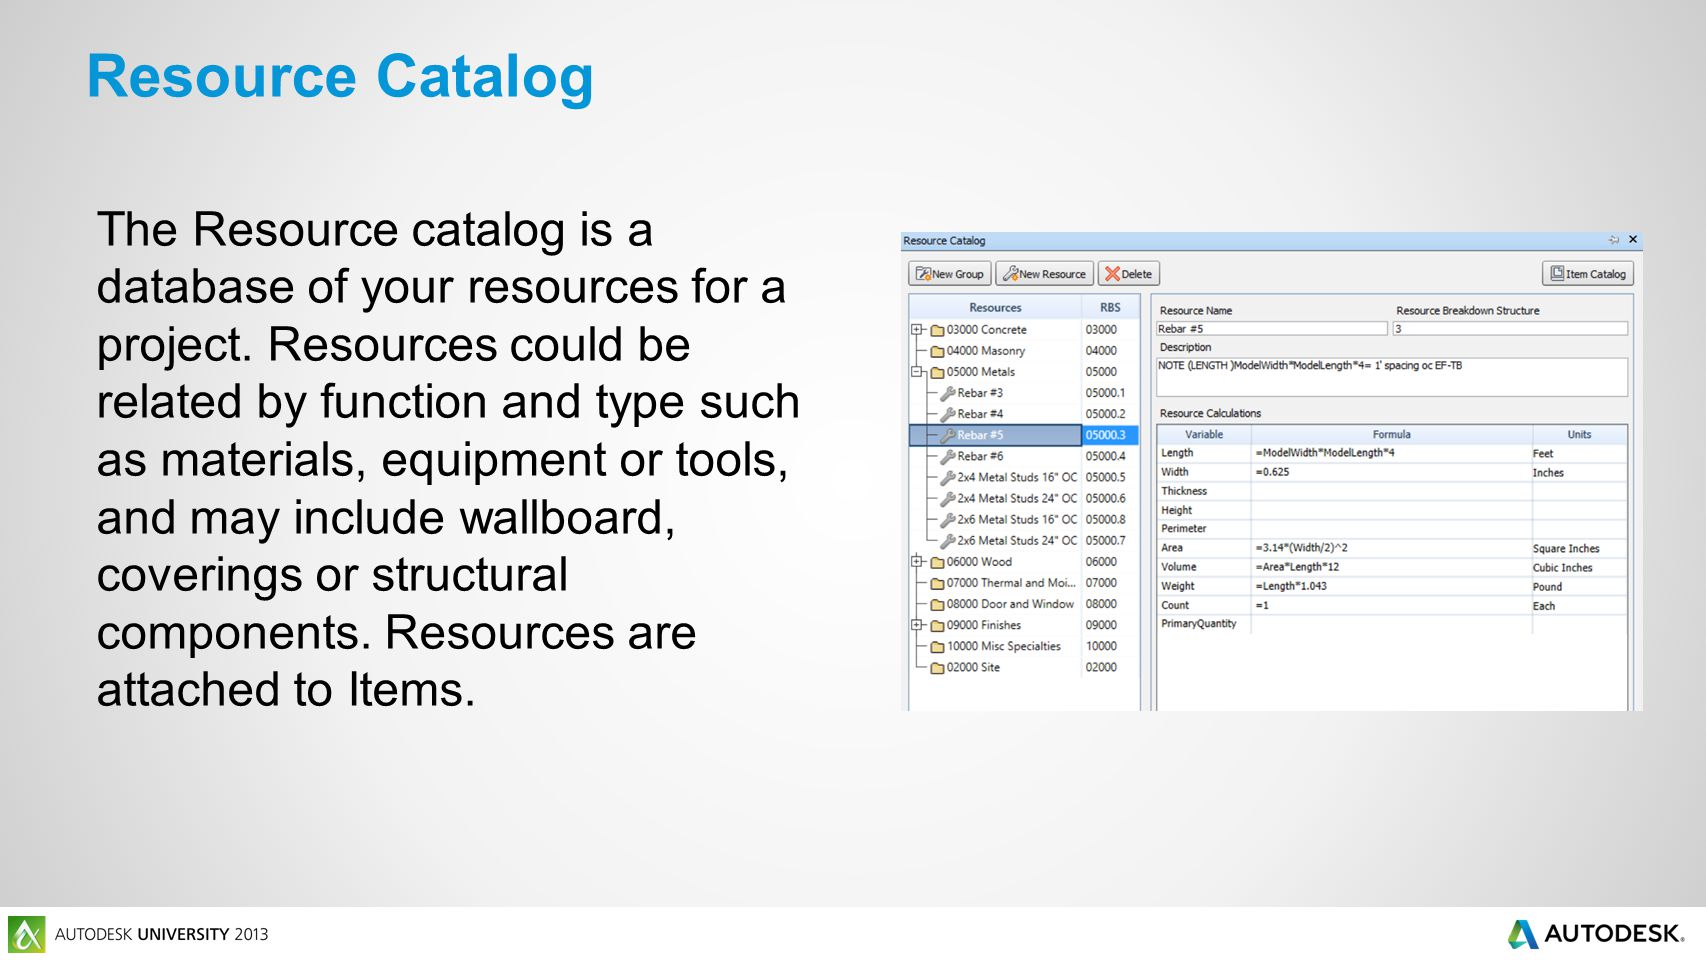 The Resource catalog is a database of your resources for a project.